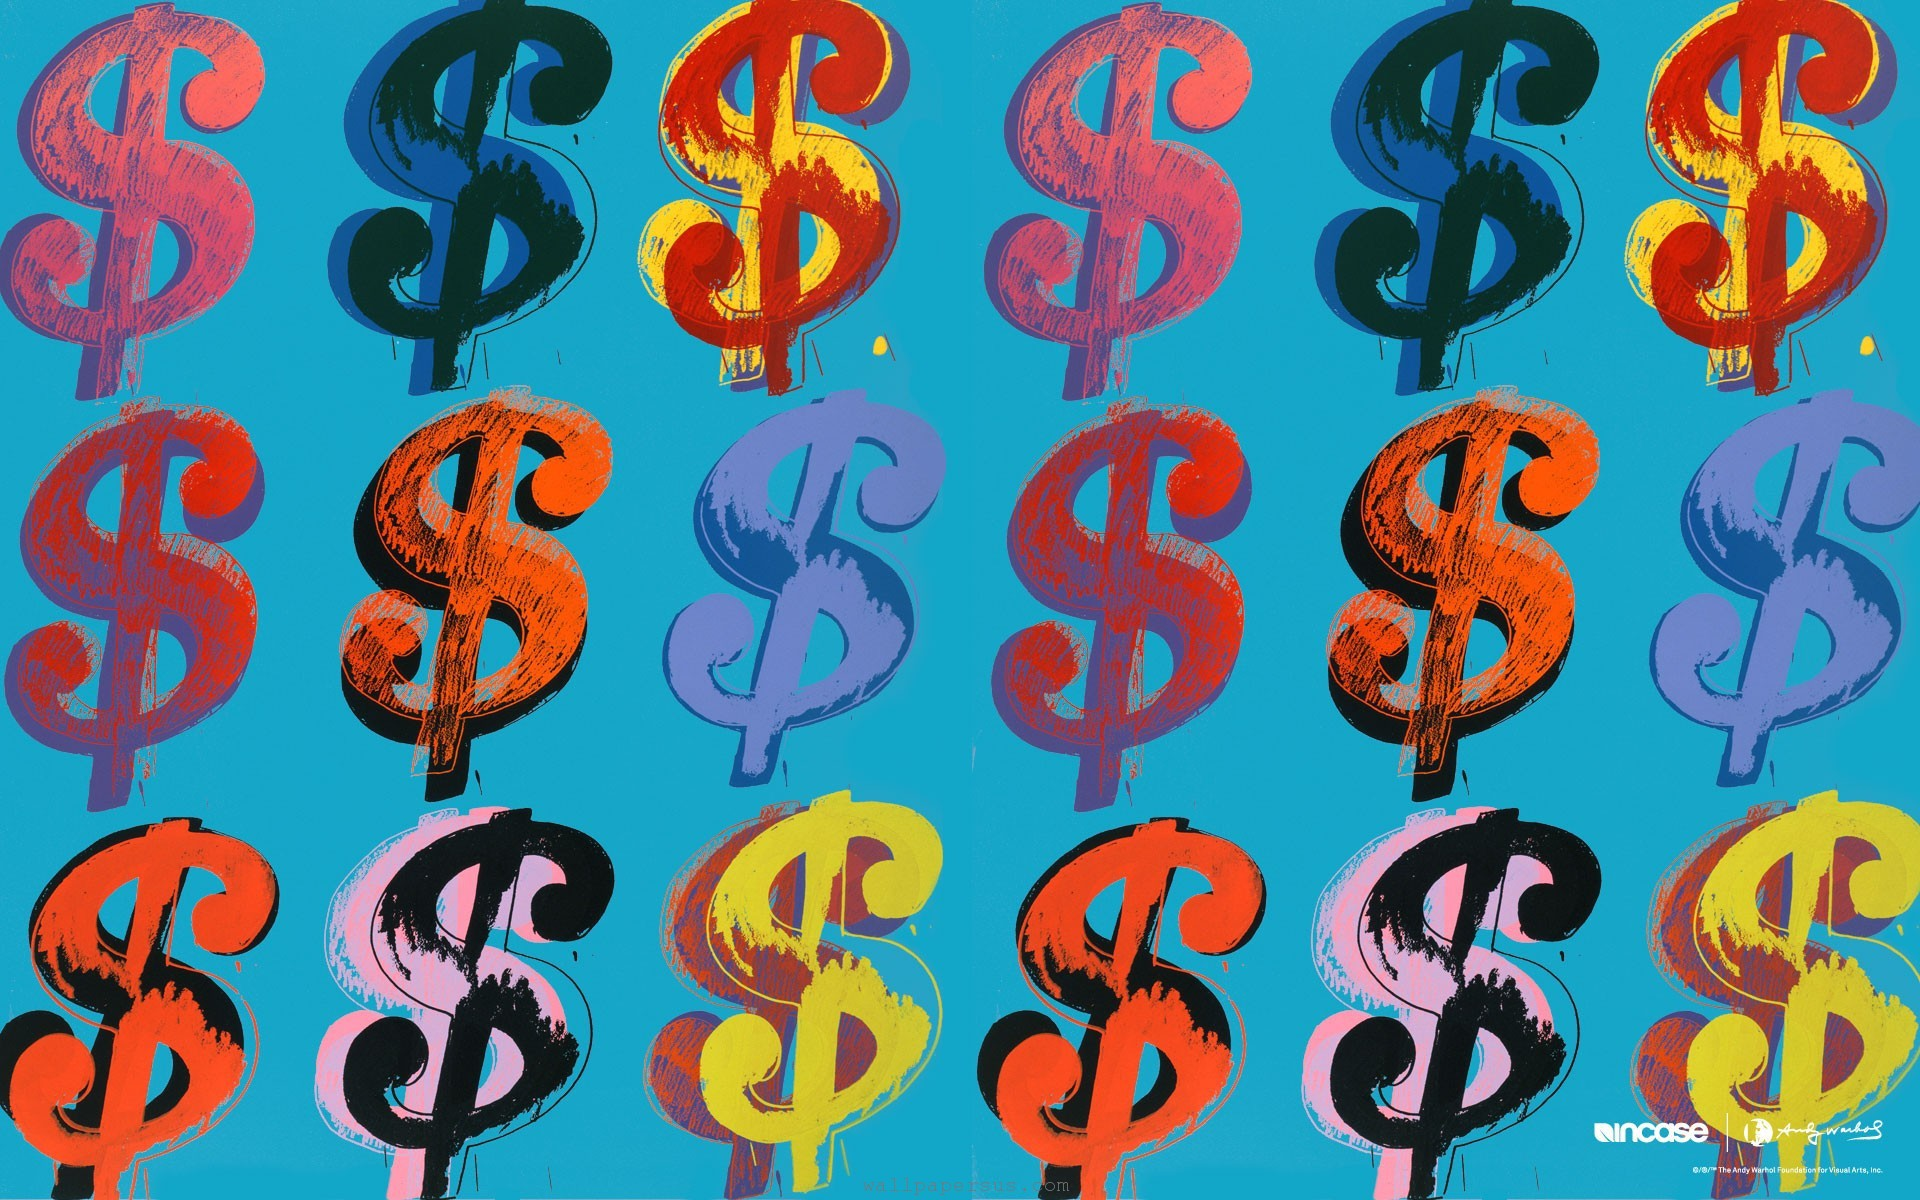 Famous painting Andy Warhol Dollars wallpapers and images   wallpapers 1920x1200